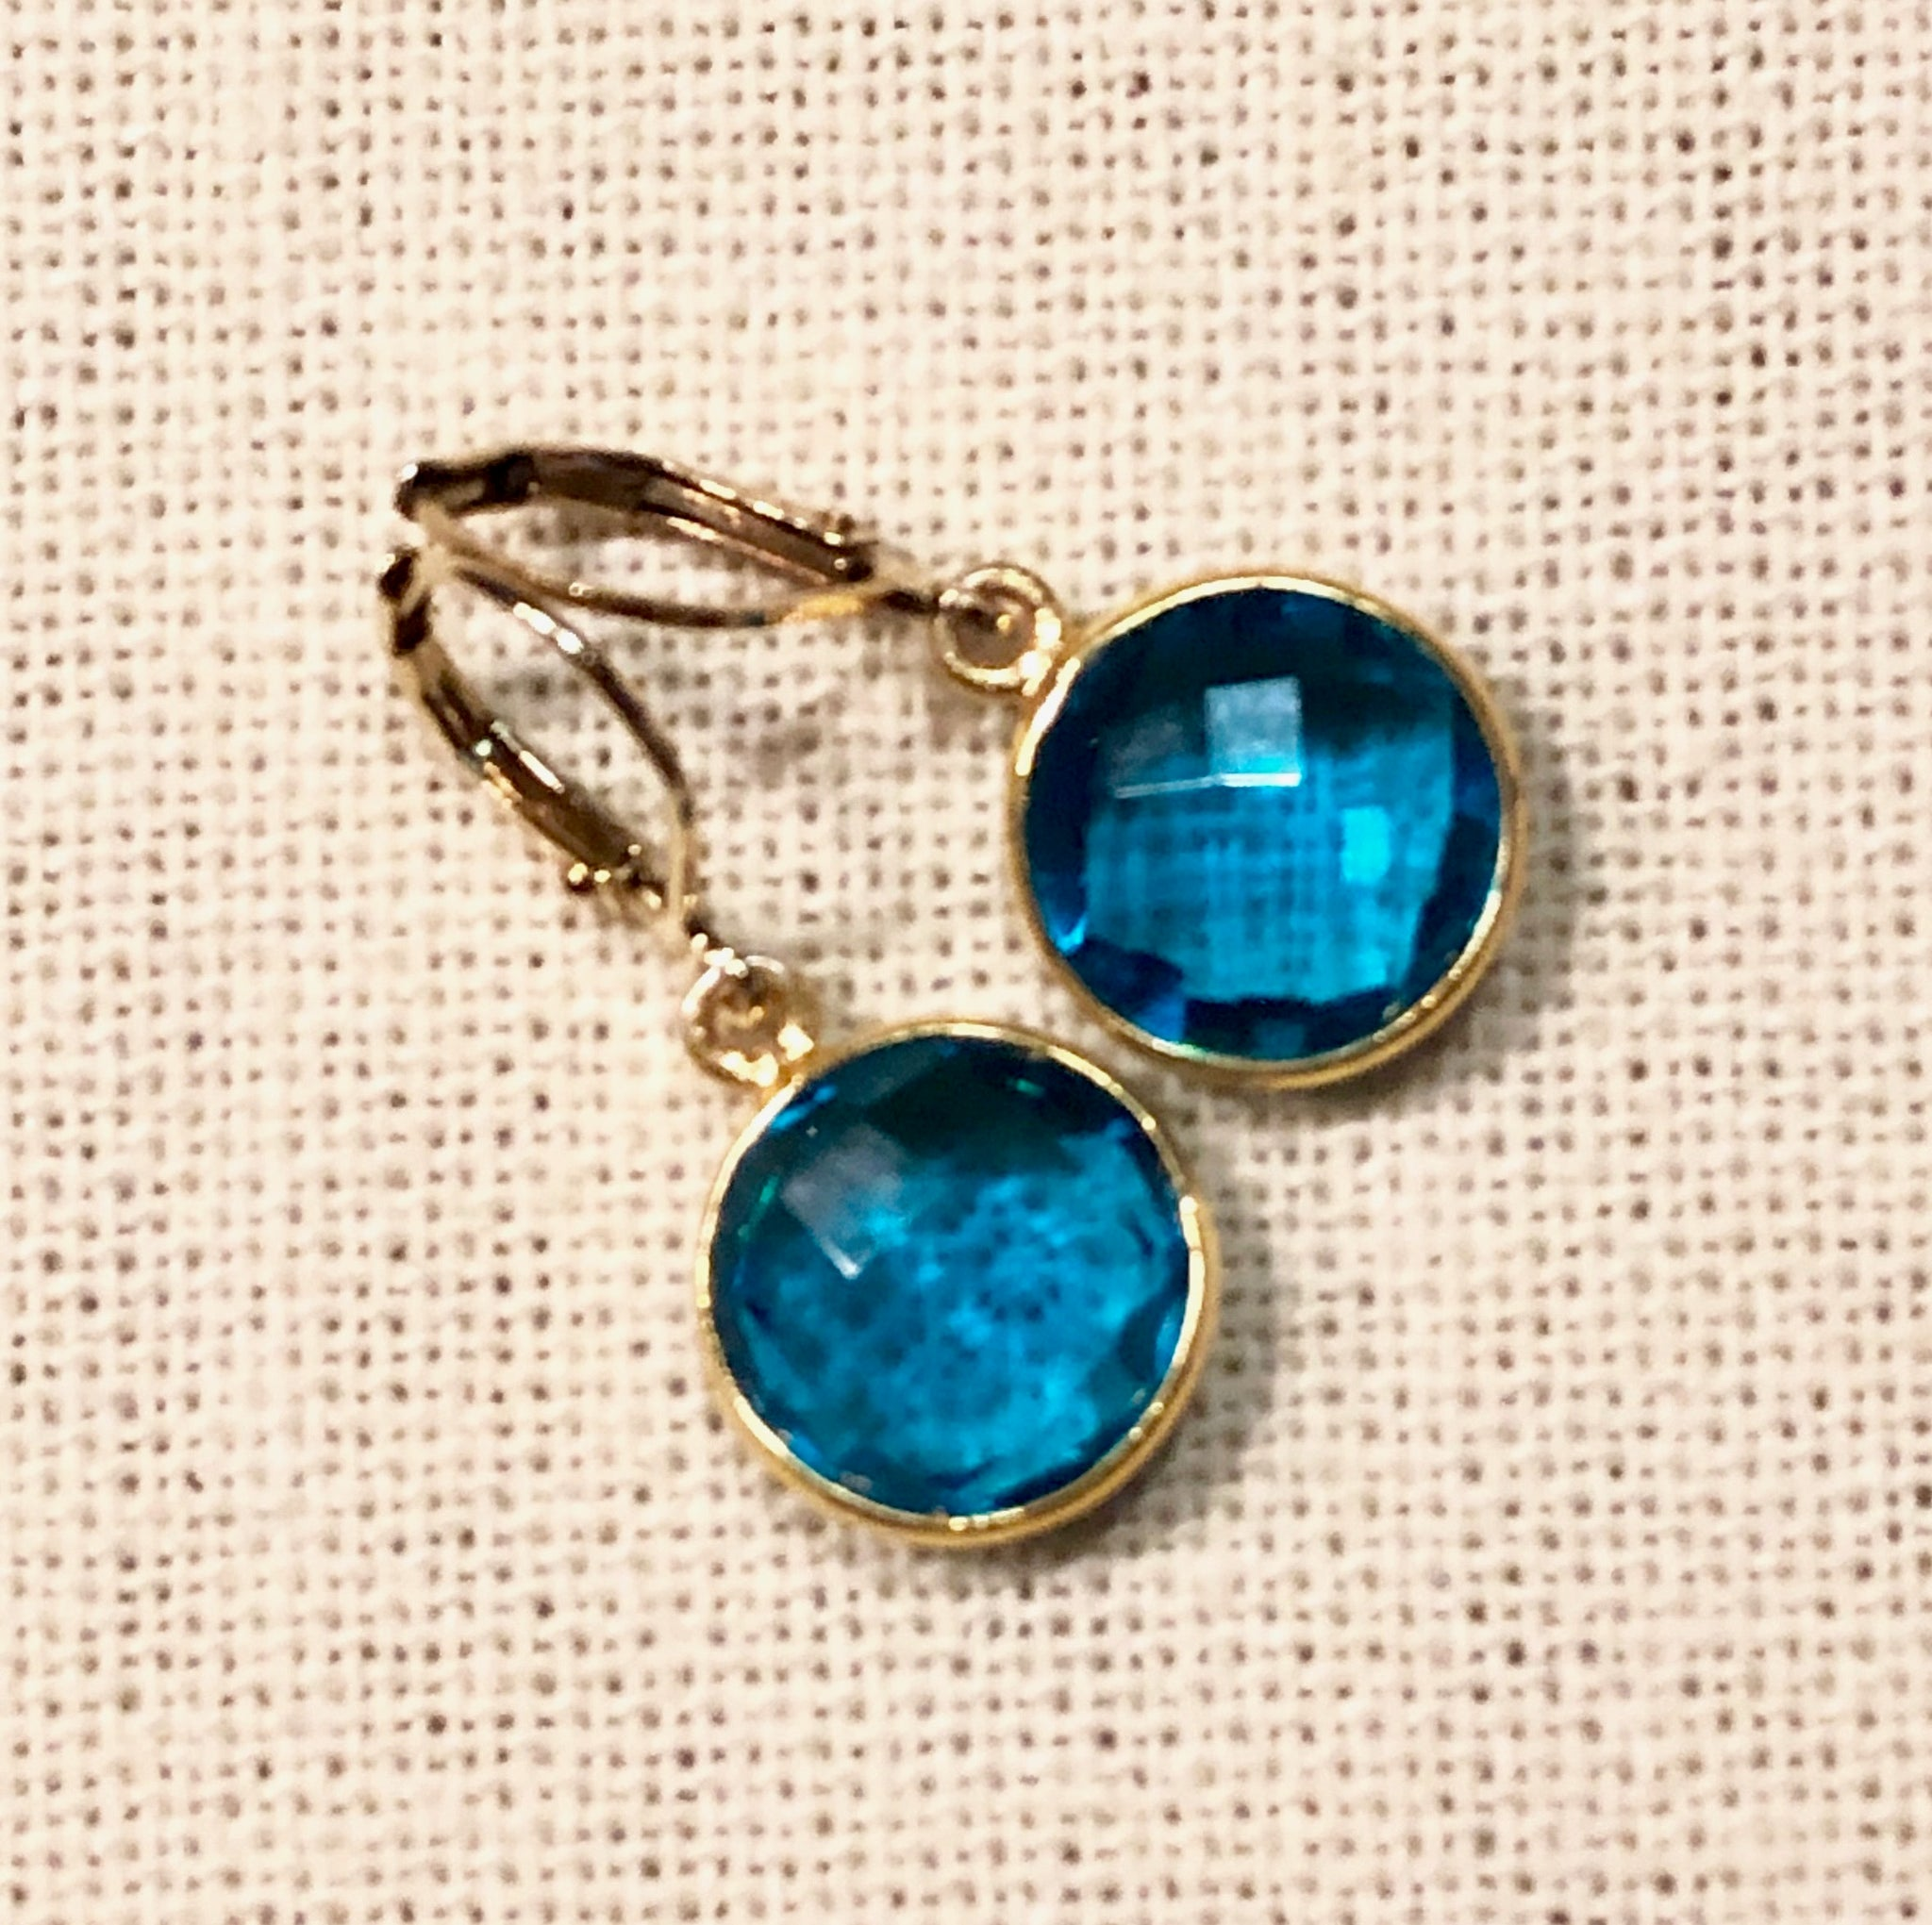 Peacock Blue Hydro Quartz Large Rain Drop Gold Earrings by Sage Machado - The Sage Lifestyle